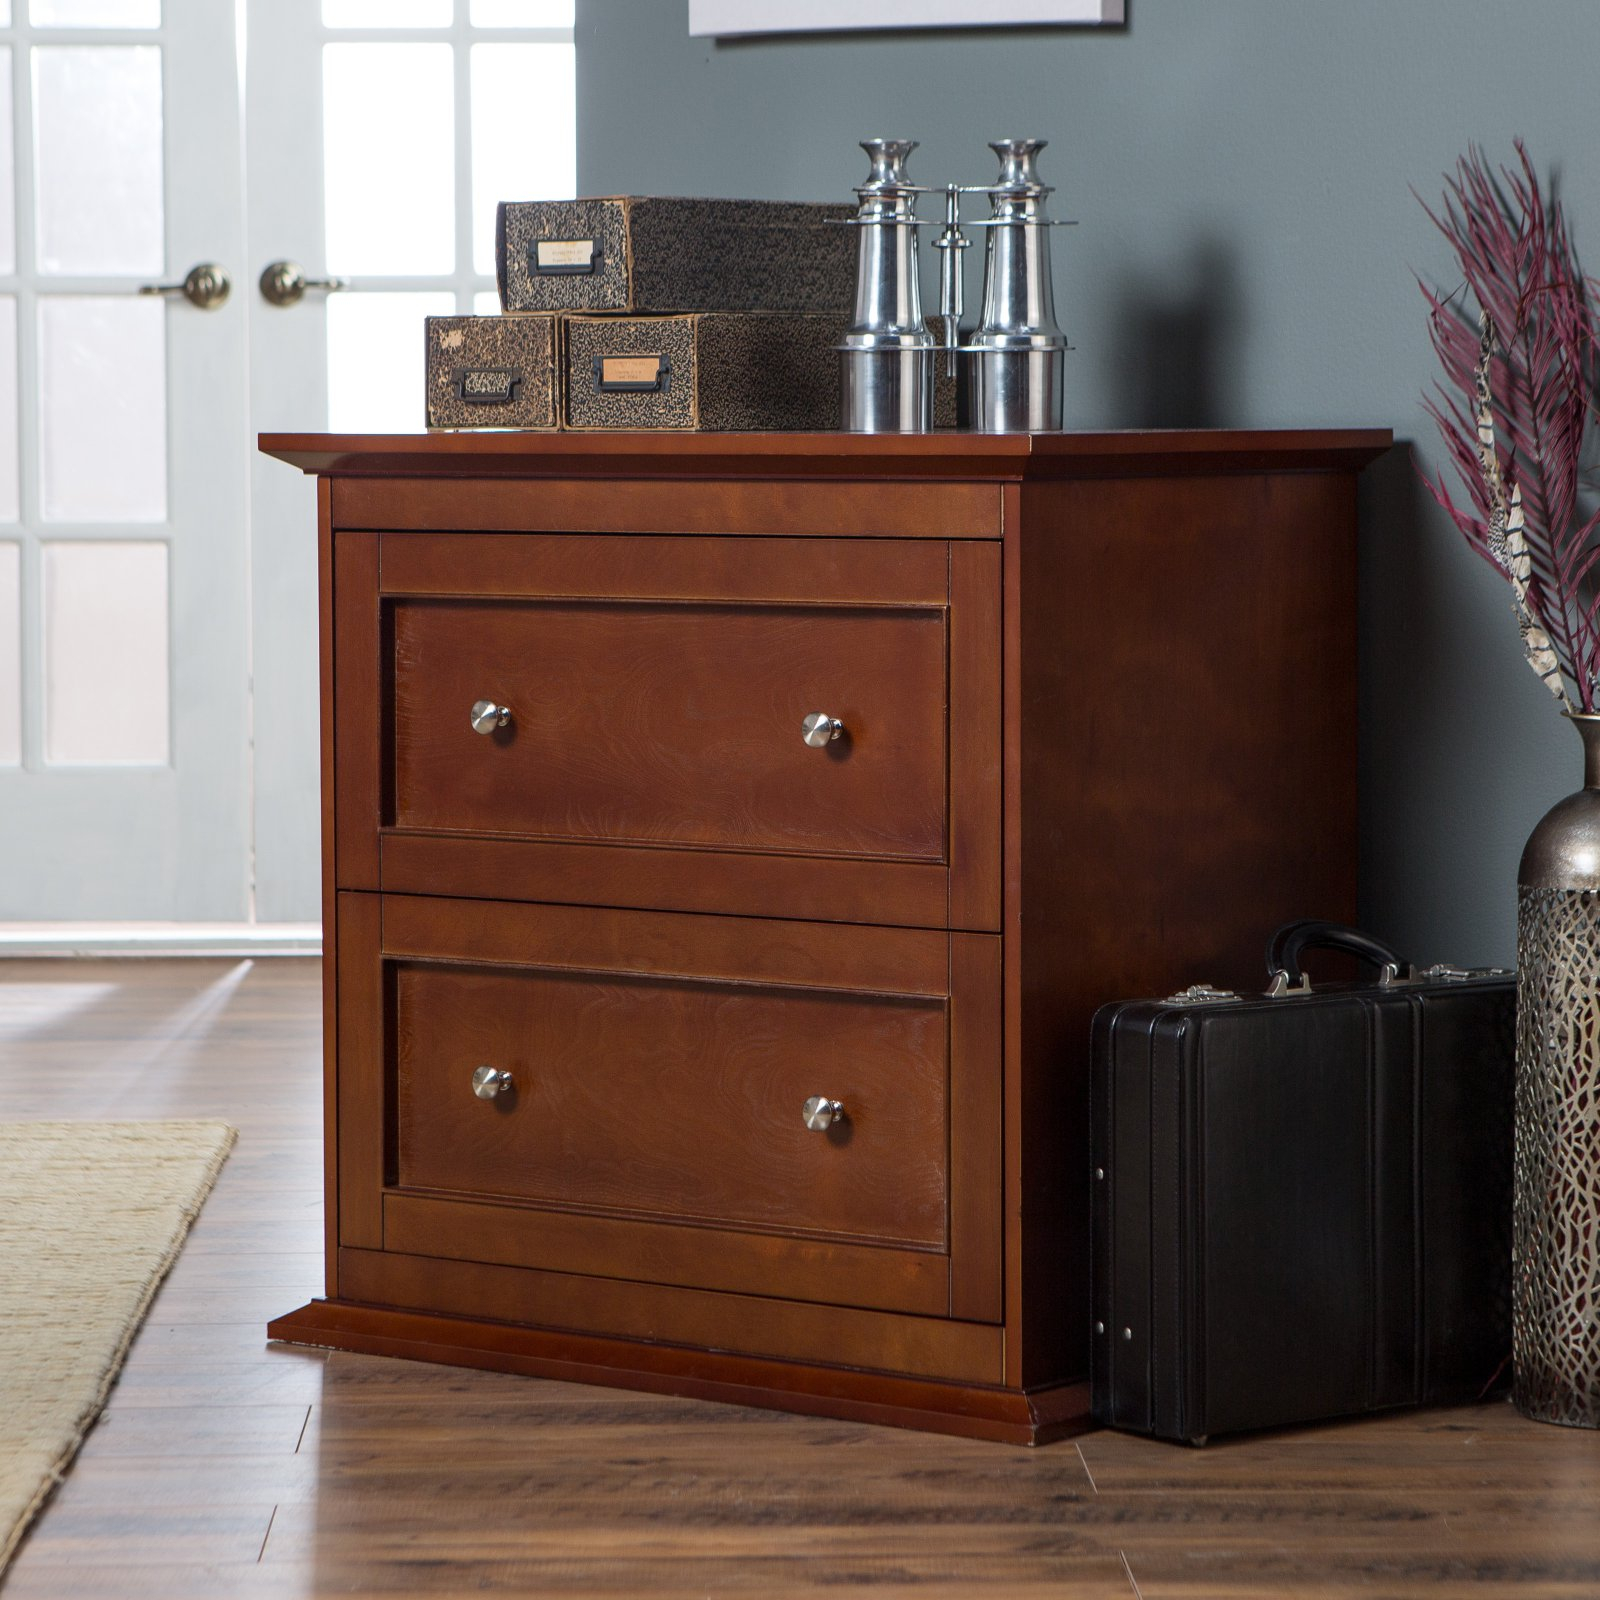 Belham Living Hampton 2 Drawer Lateral Wood Filing Cabinet Cherry intended for sizing 1600 X 1600